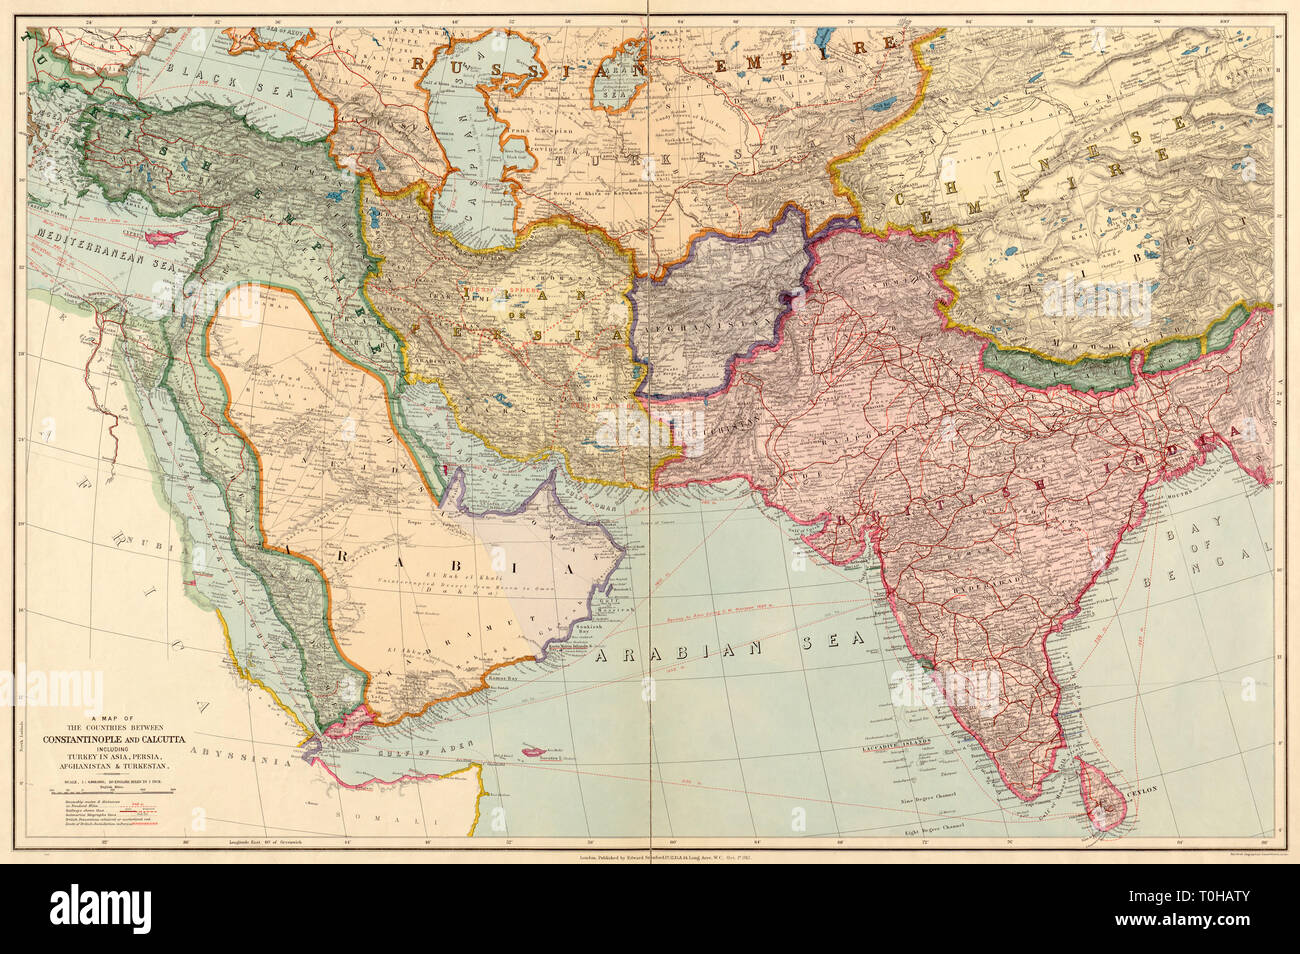 Countries map, Asia, - Stock Image